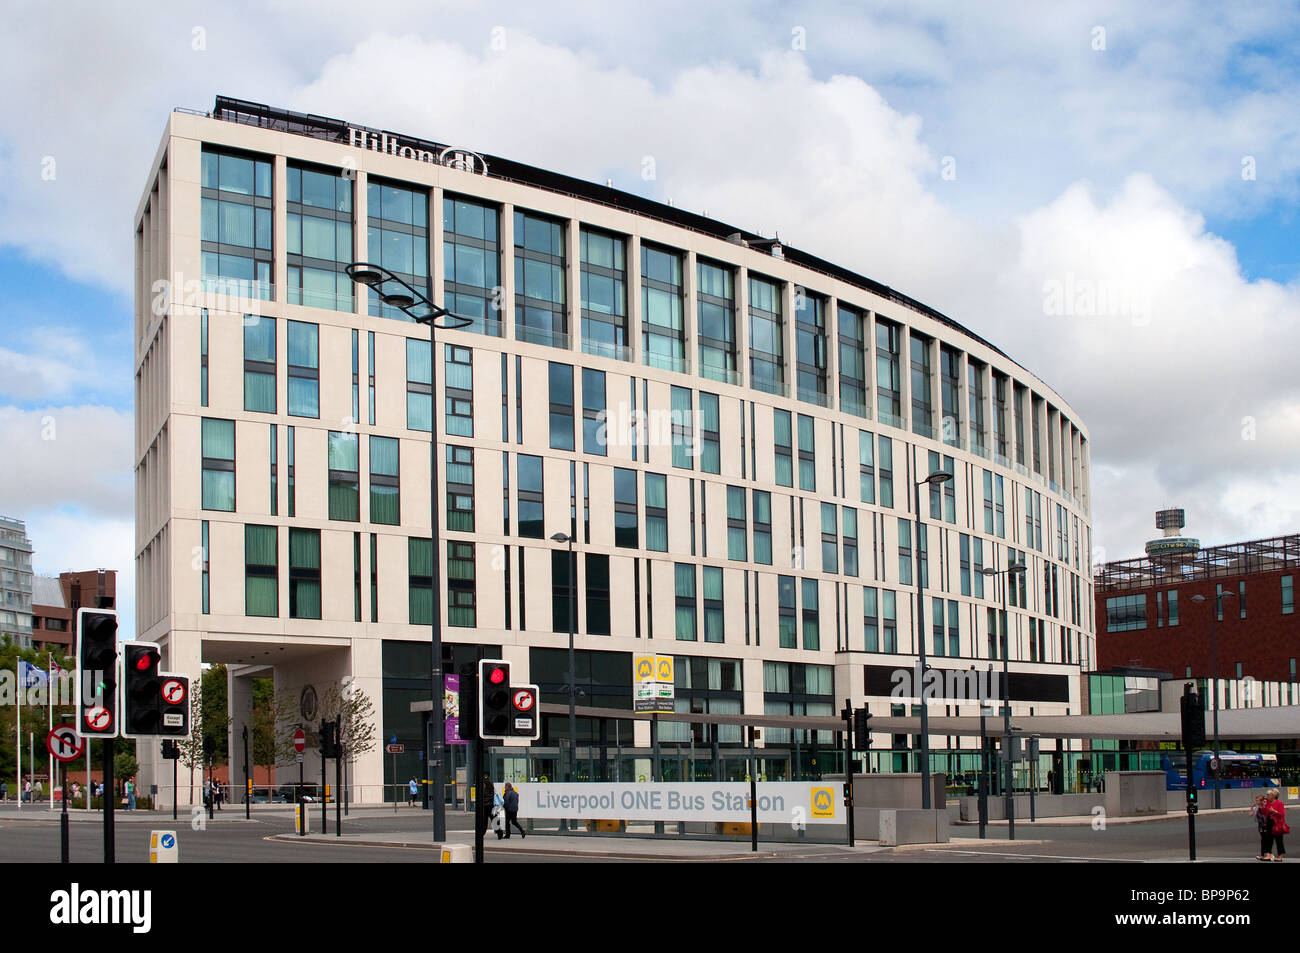 the recently opened Hilton hotel in Liverpool, UK - Stock Image